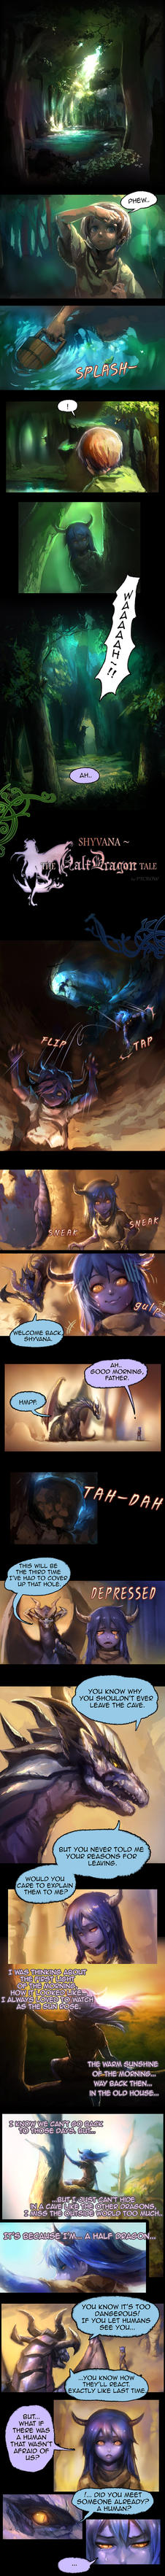 Shyvana~ The Half Dragon Tale. Page 1/6 by ptcrow